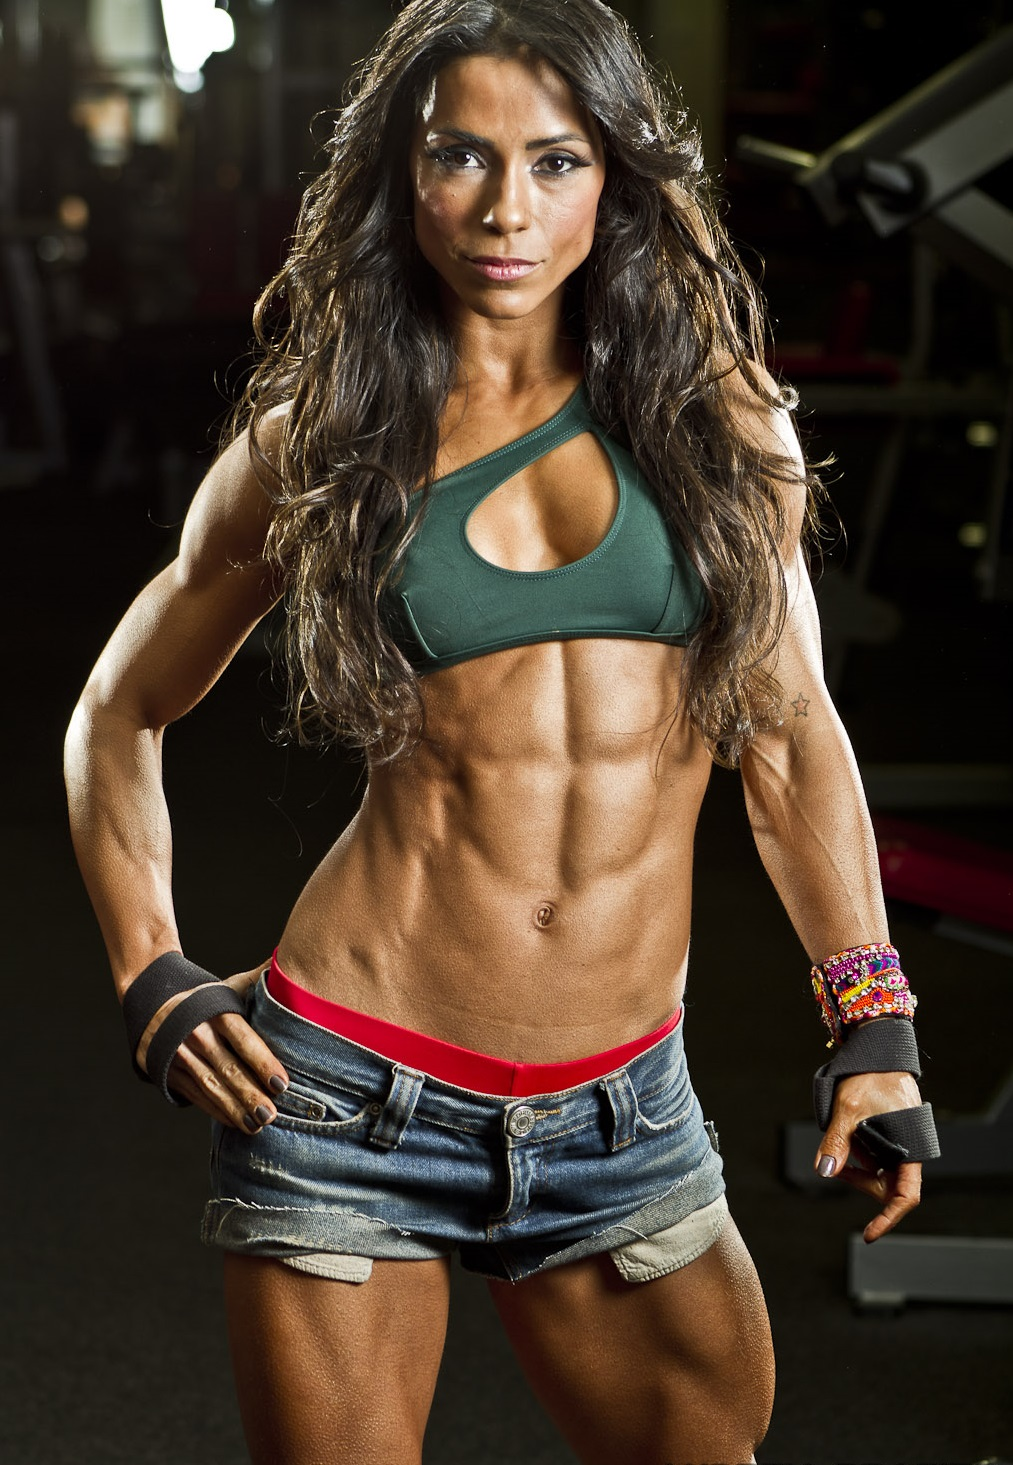 Female muscle women naked